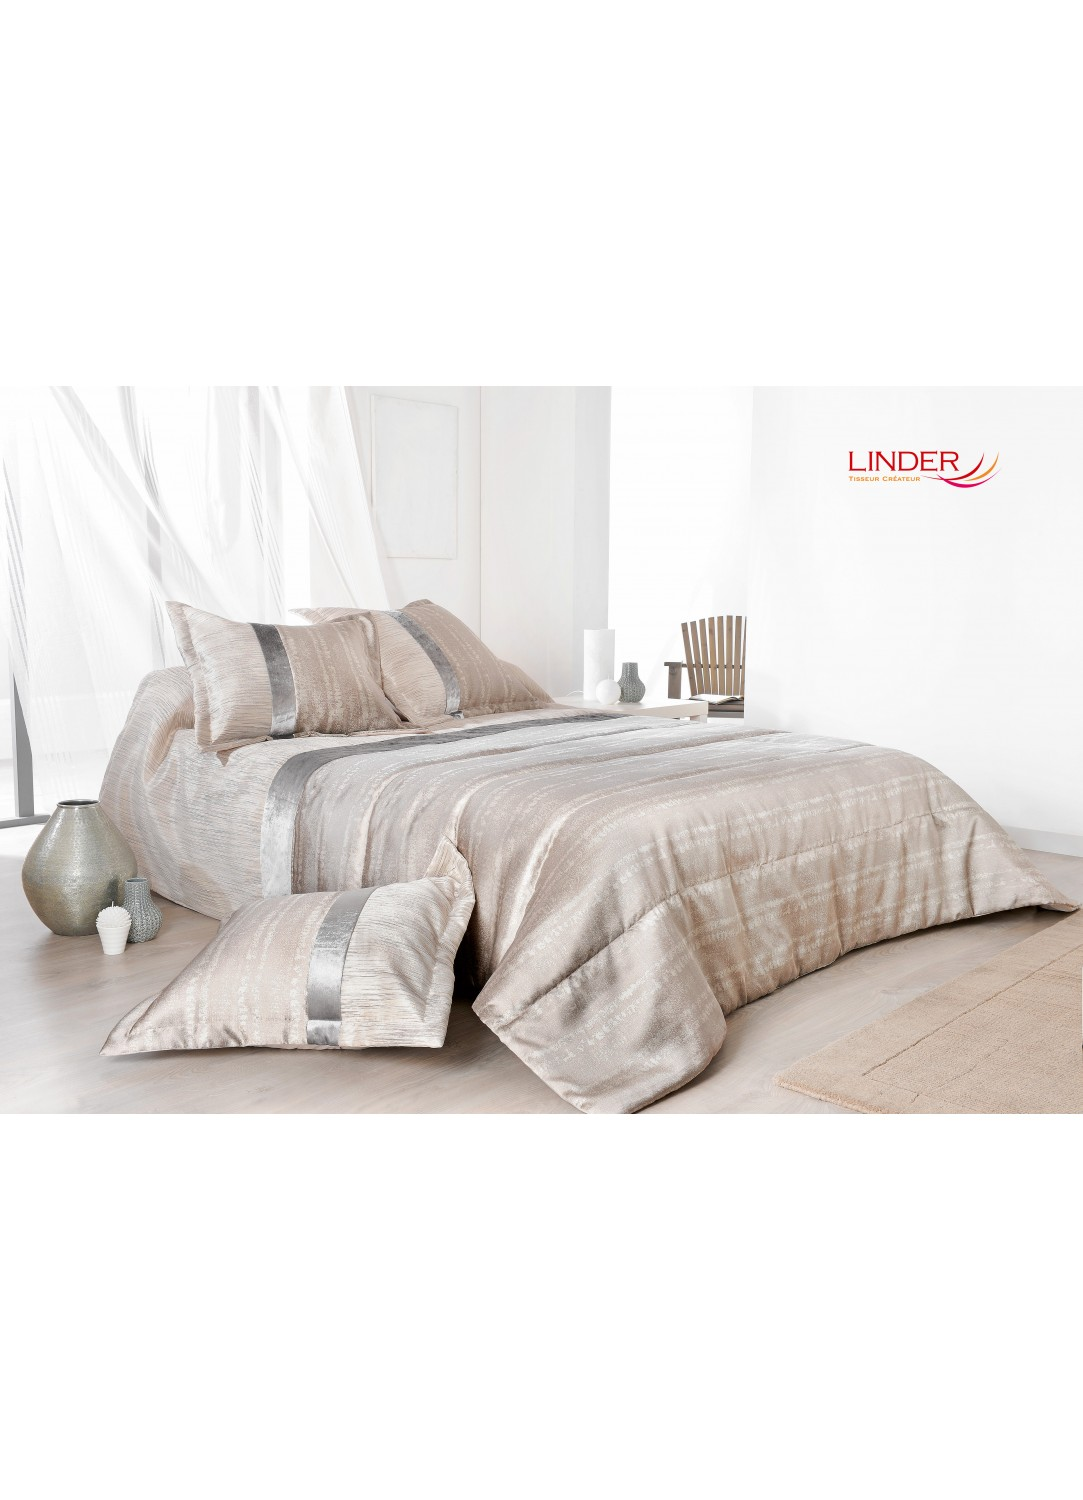 jet de lit ouatin iris avec taie d oreiller brun beige iris et gris perle homemaison. Black Bedroom Furniture Sets. Home Design Ideas